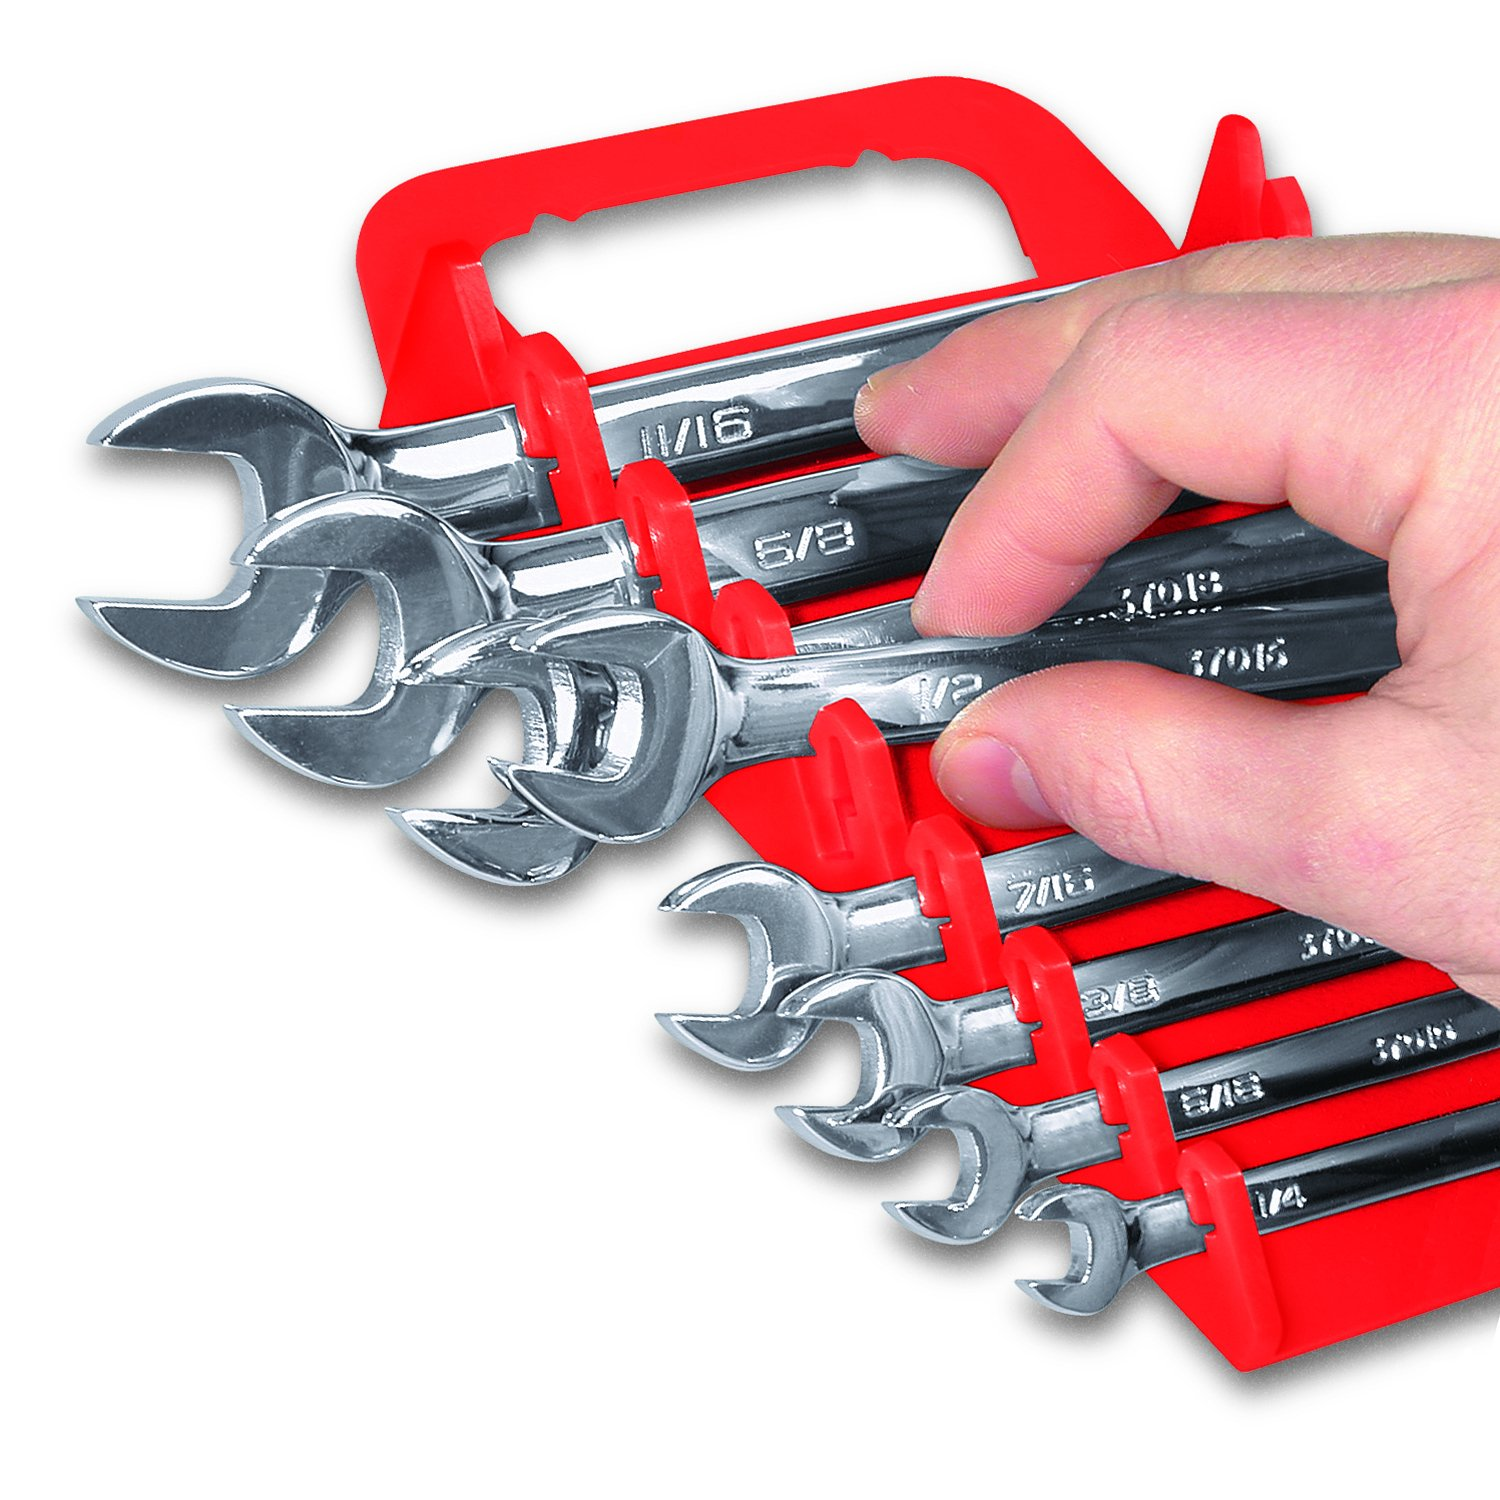 Ernst Manufacturing Gripper Wrench Organizer 15 Tool Red Open